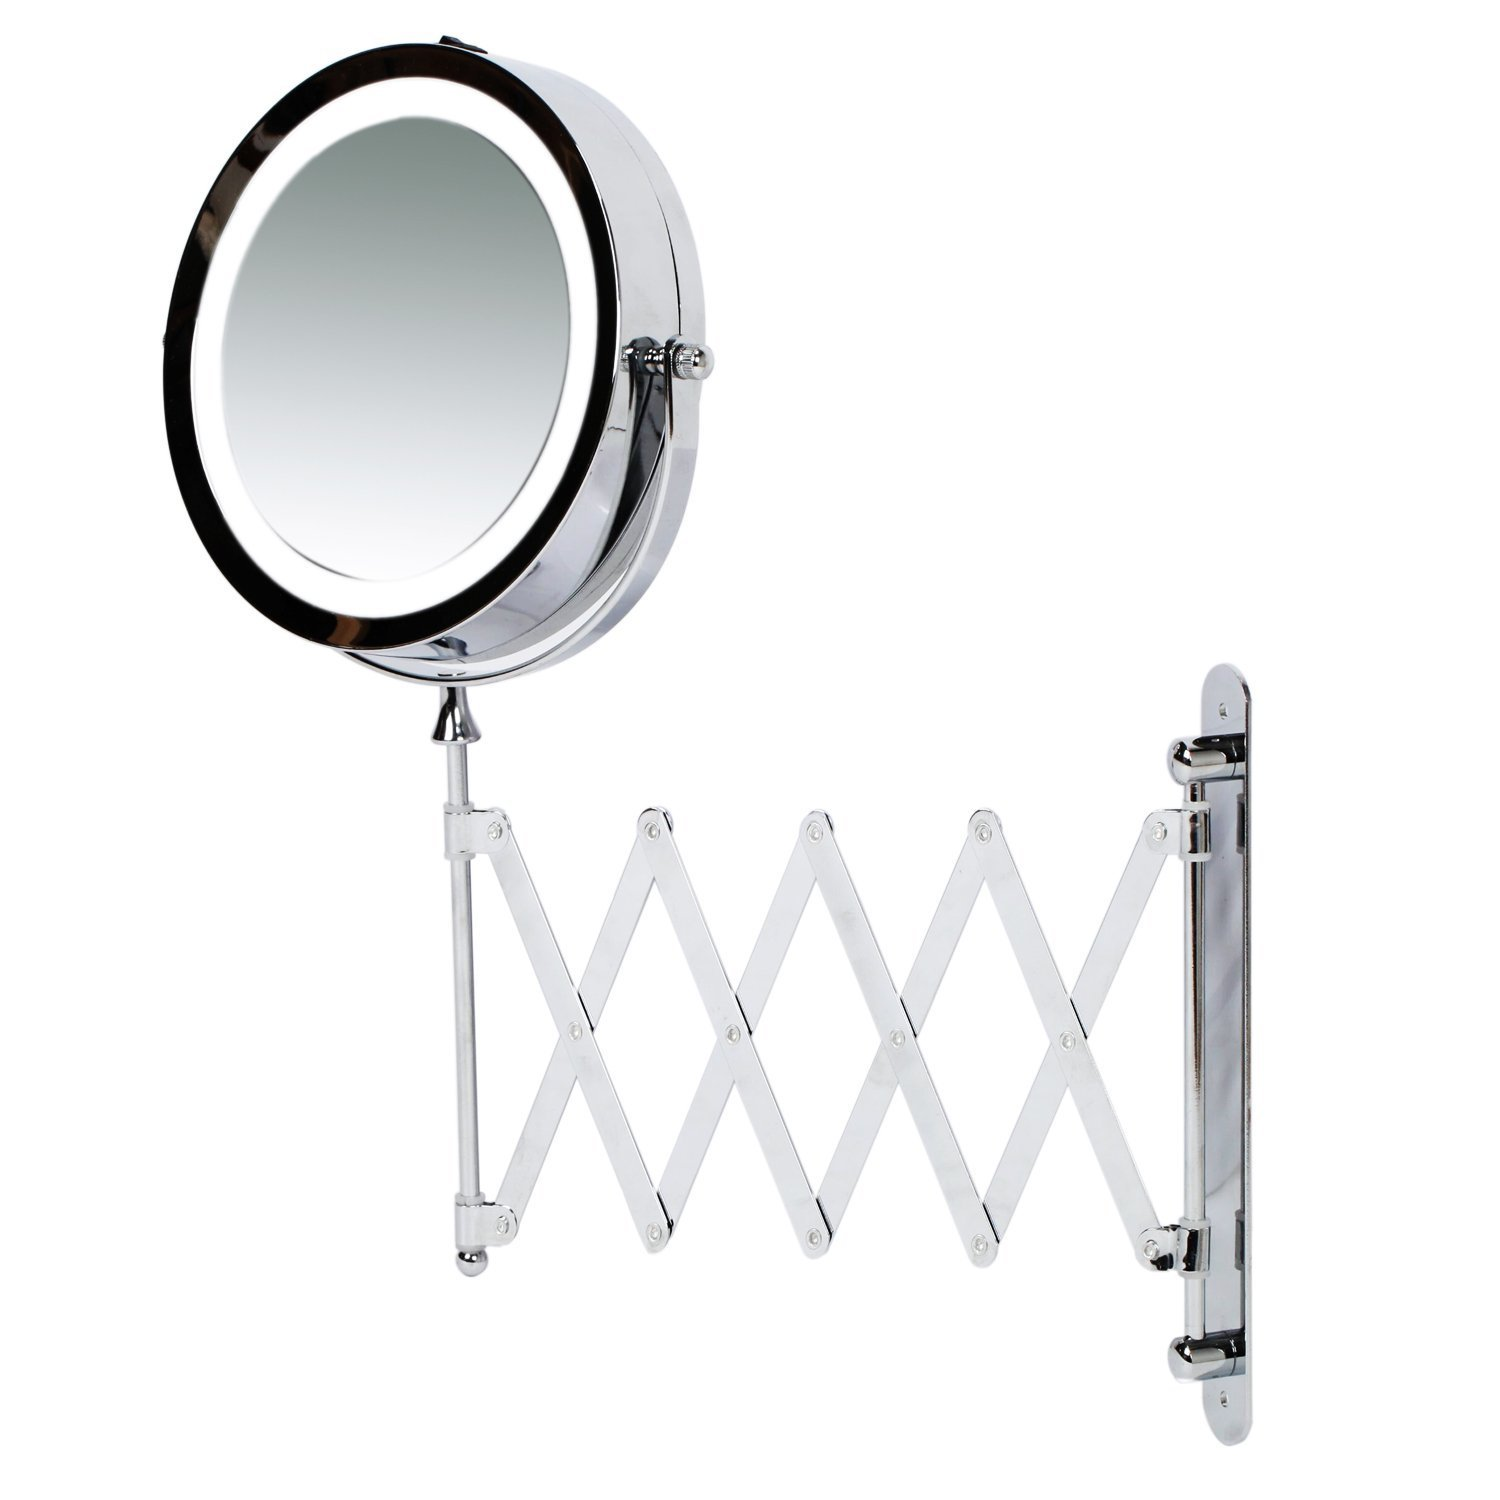 Amazon kenley wall mounted magnifying makeup mirror with led amazon kenley wall mounted magnifying makeup mirror with led light extending vanity shaving lighted 7 two sided mirror with 3x magnification aloadofball Gallery